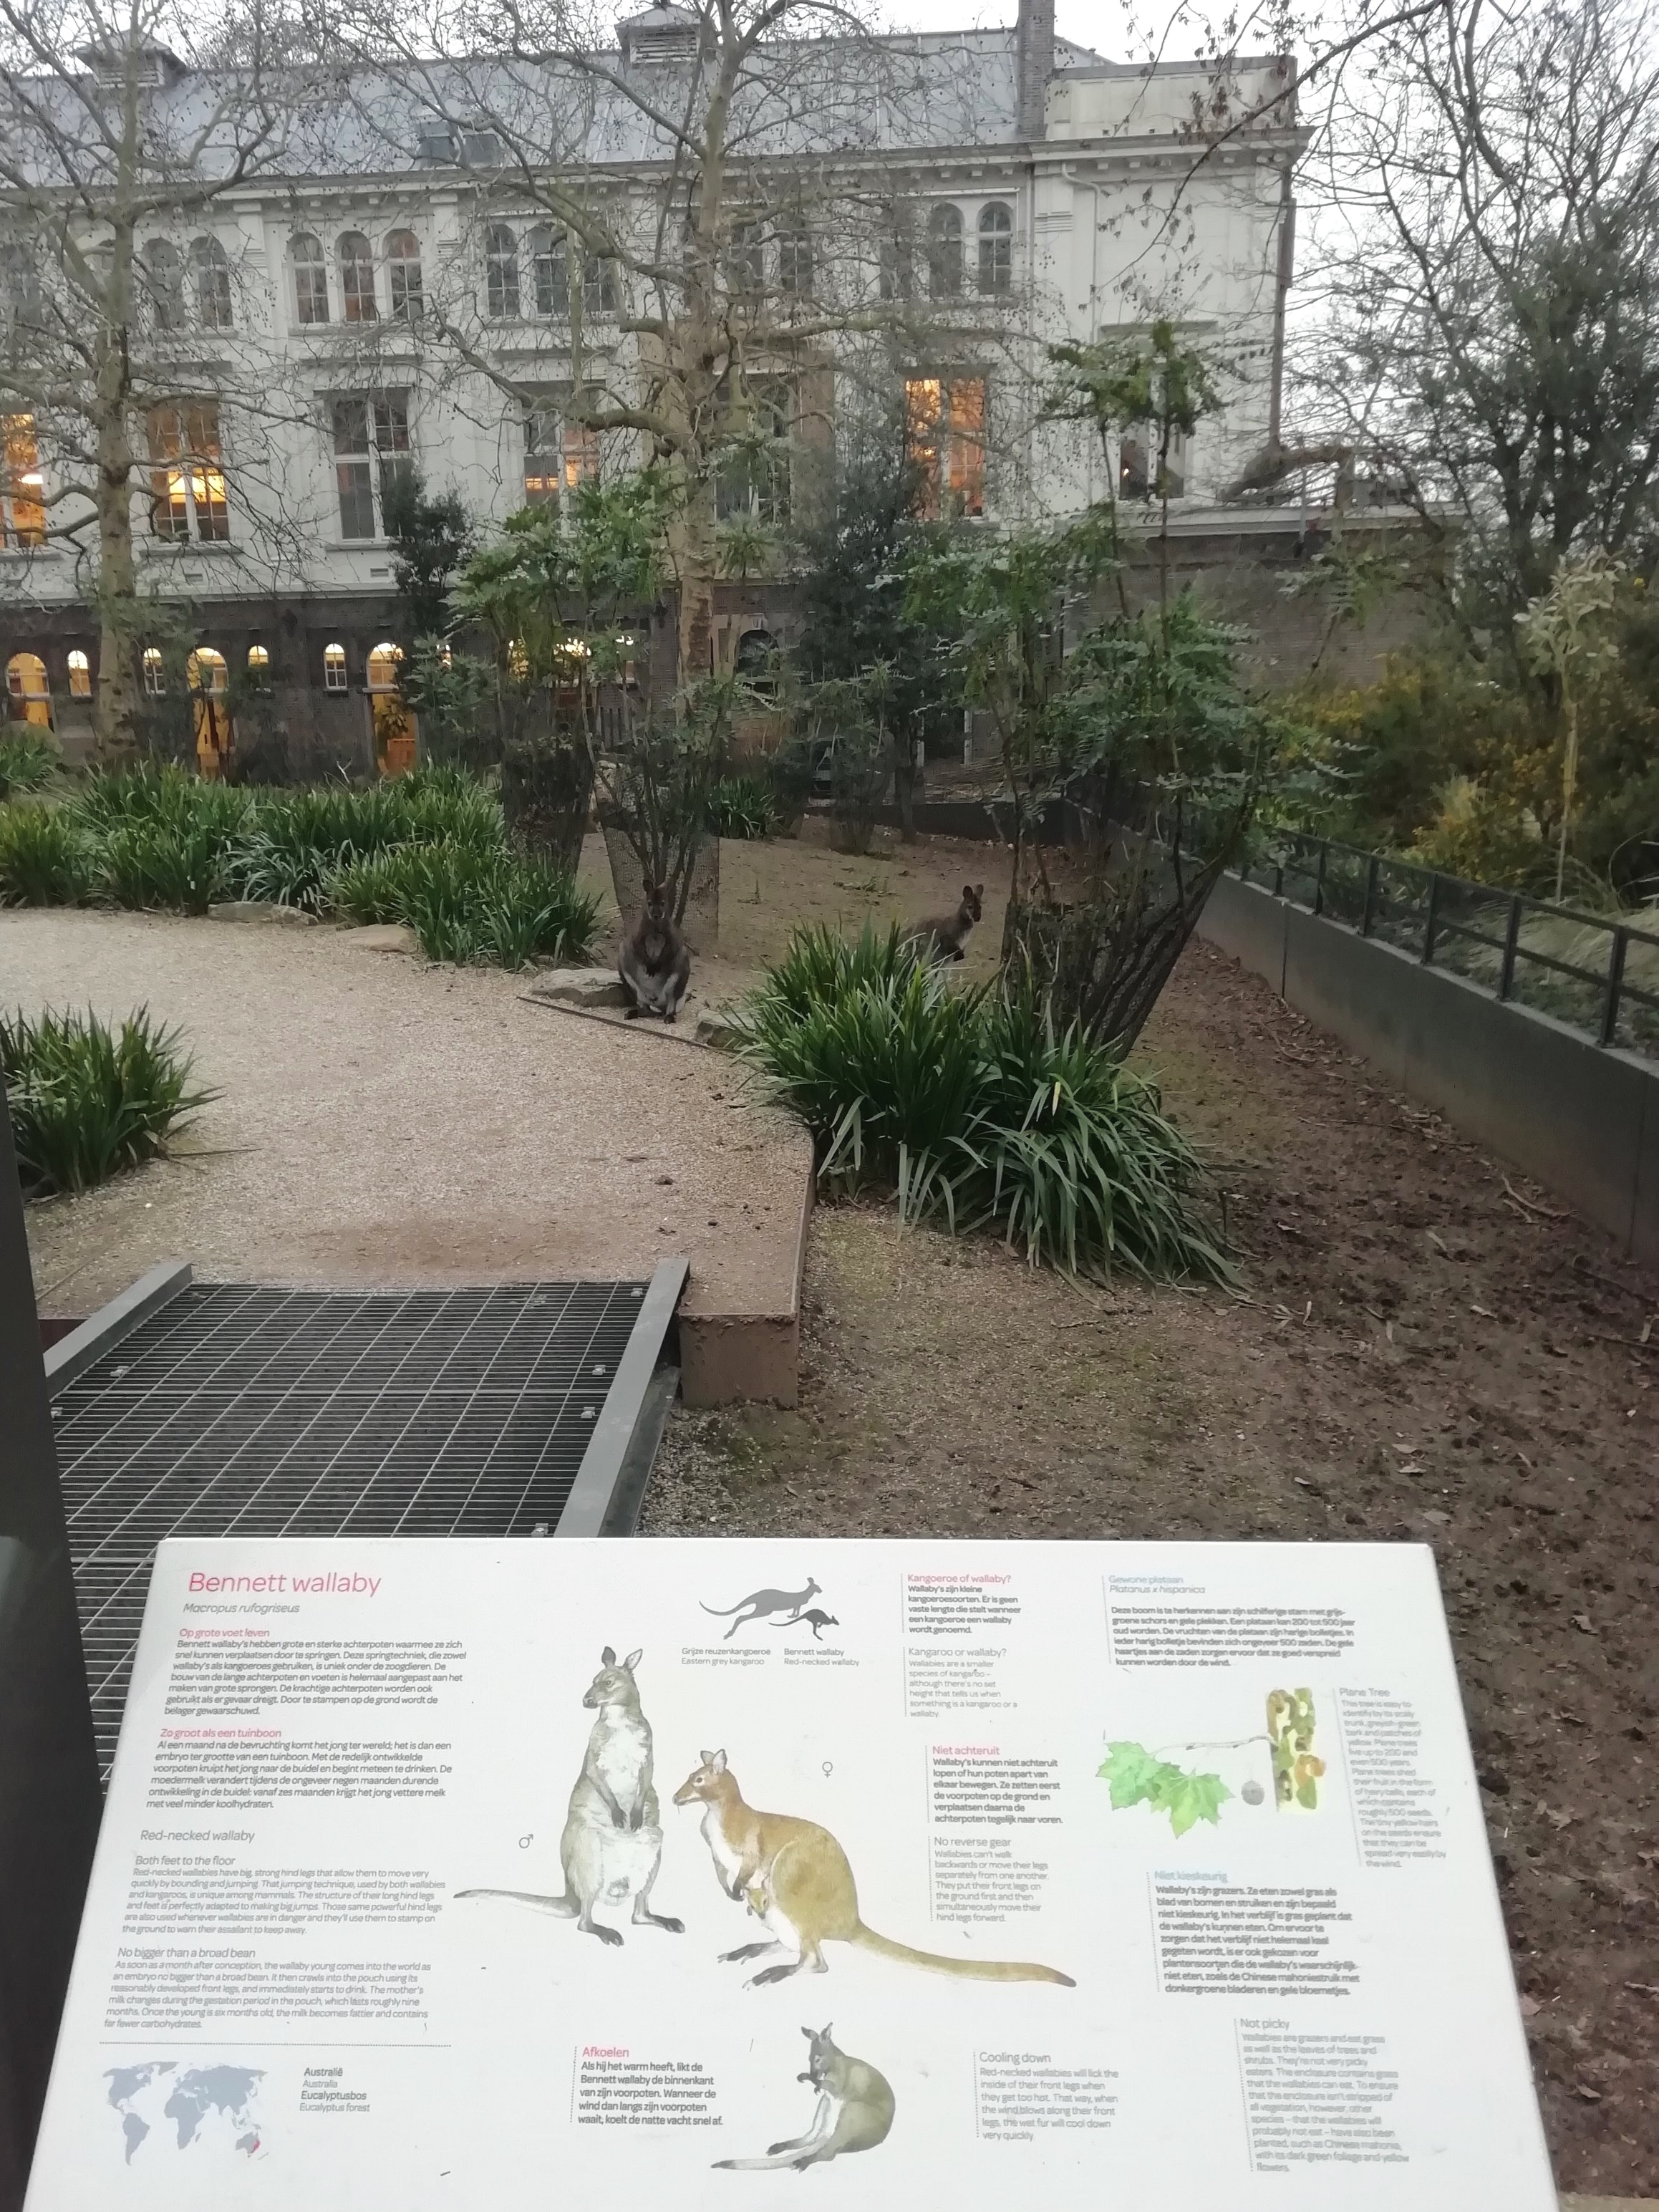 Information sign on the Bennett Wallabies